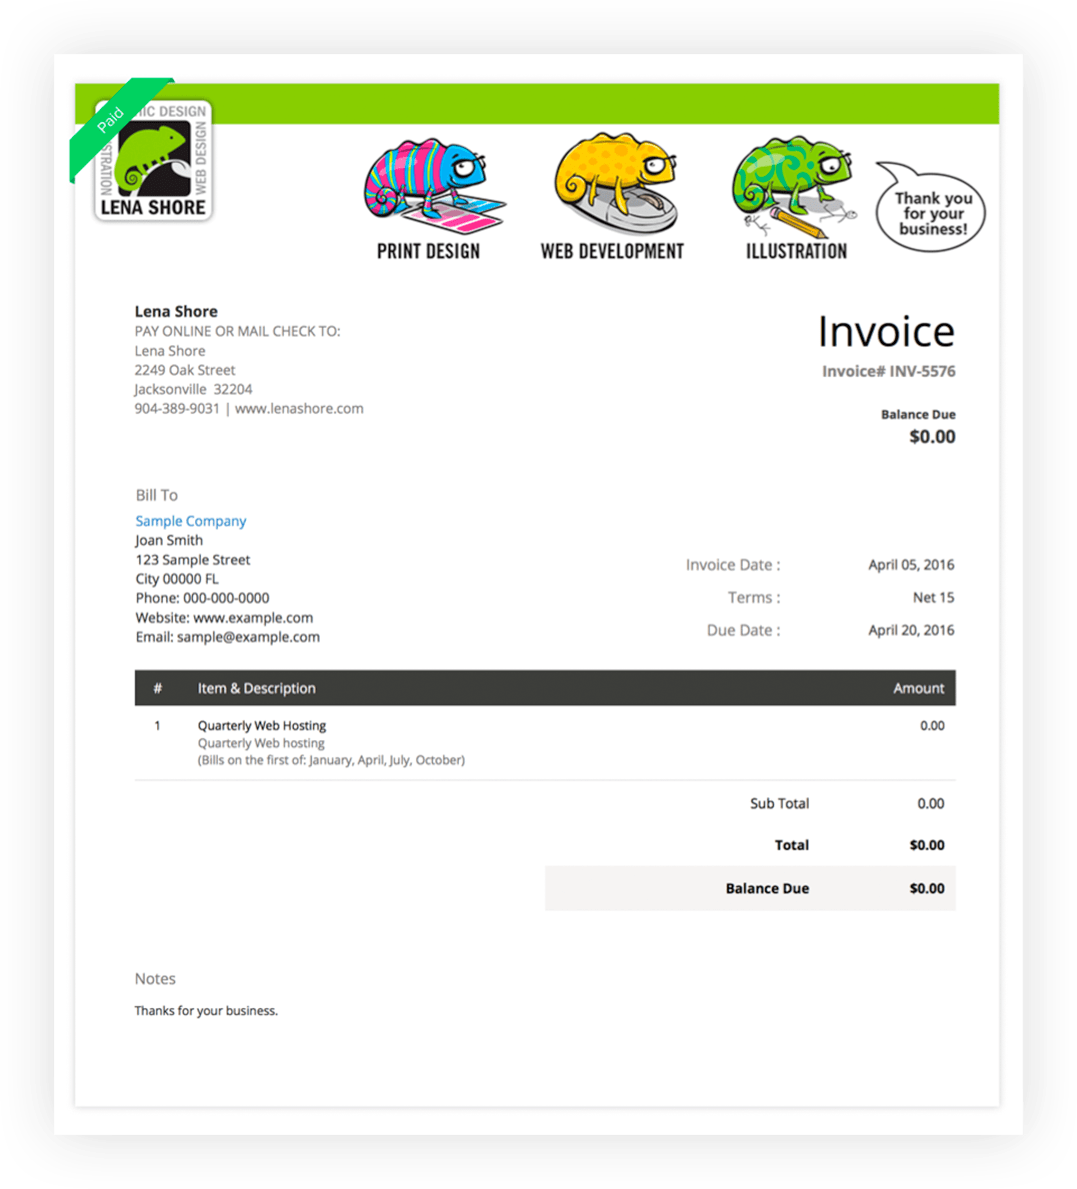 Lena's Business and Zoho Invoice